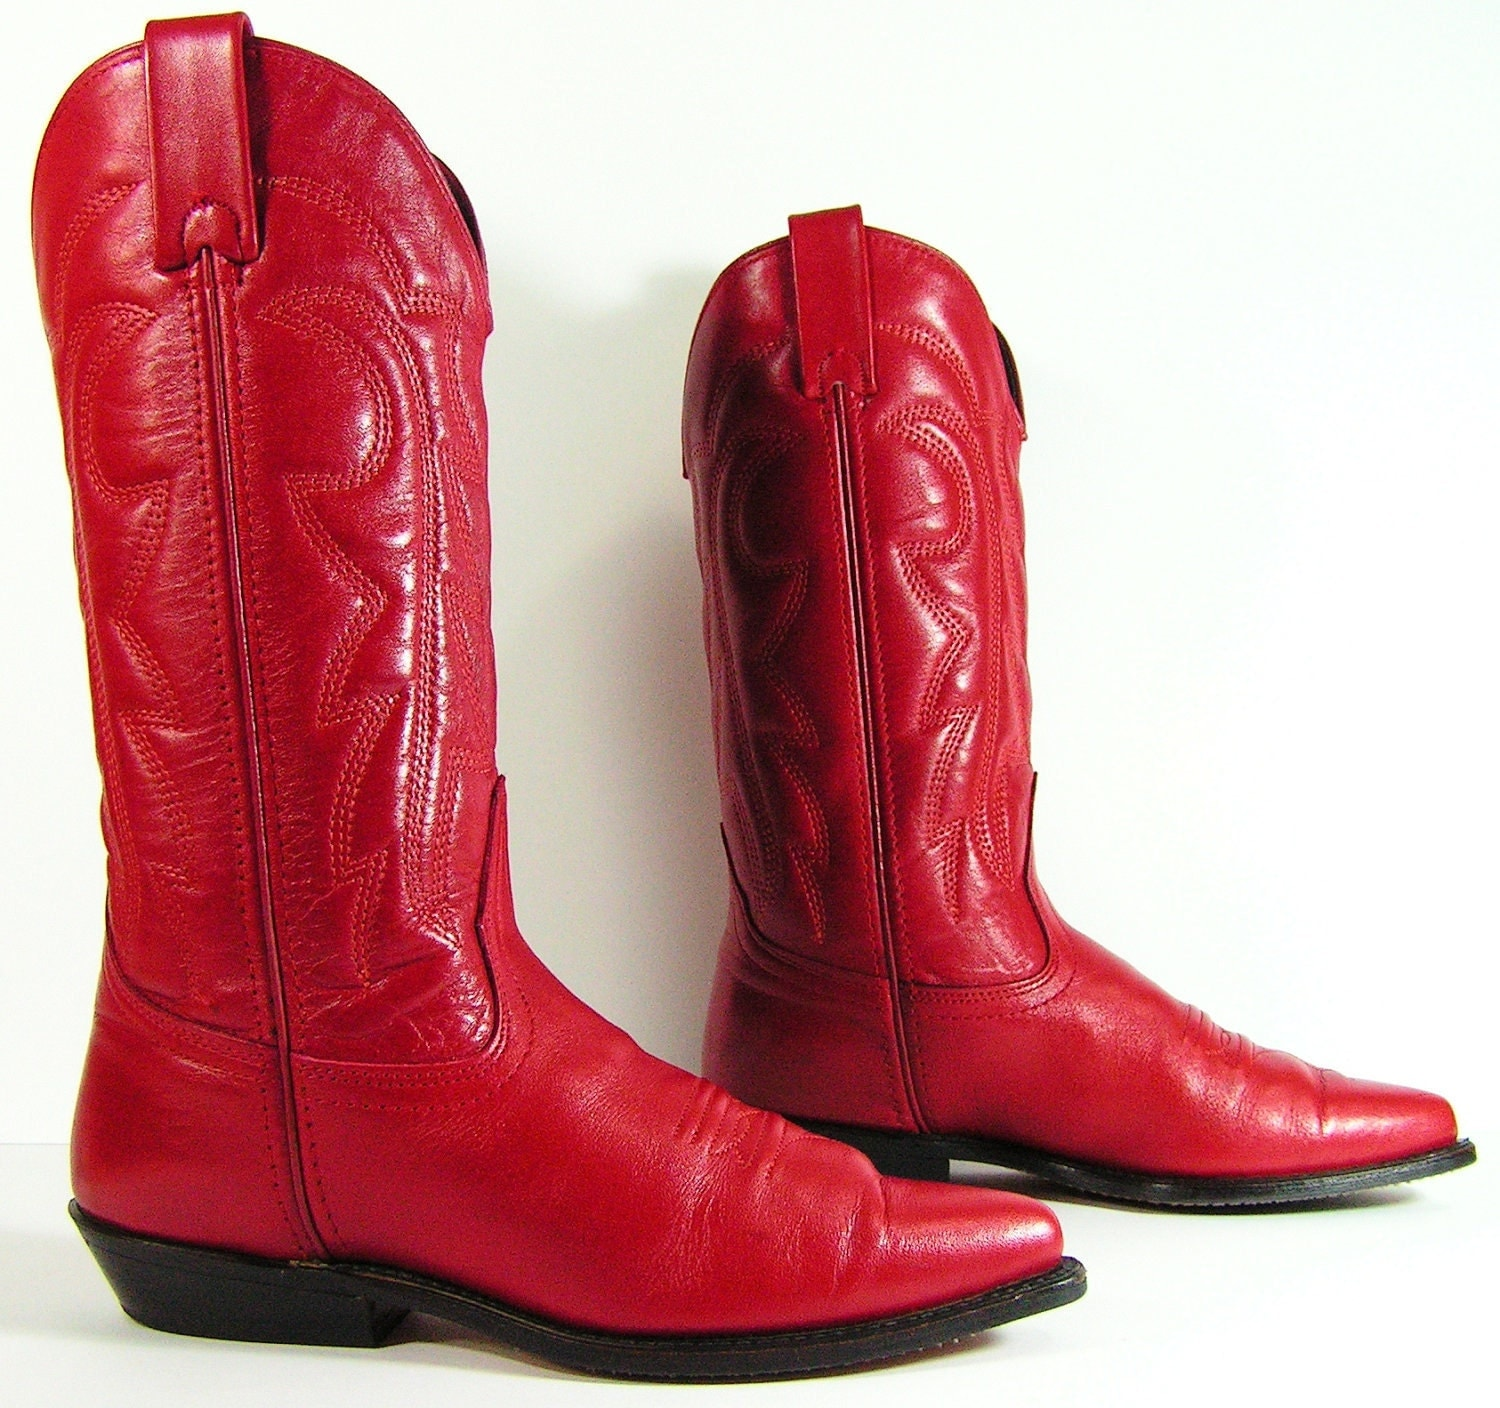 Wonderful Boots Costume Pic Cowboy Boots Red